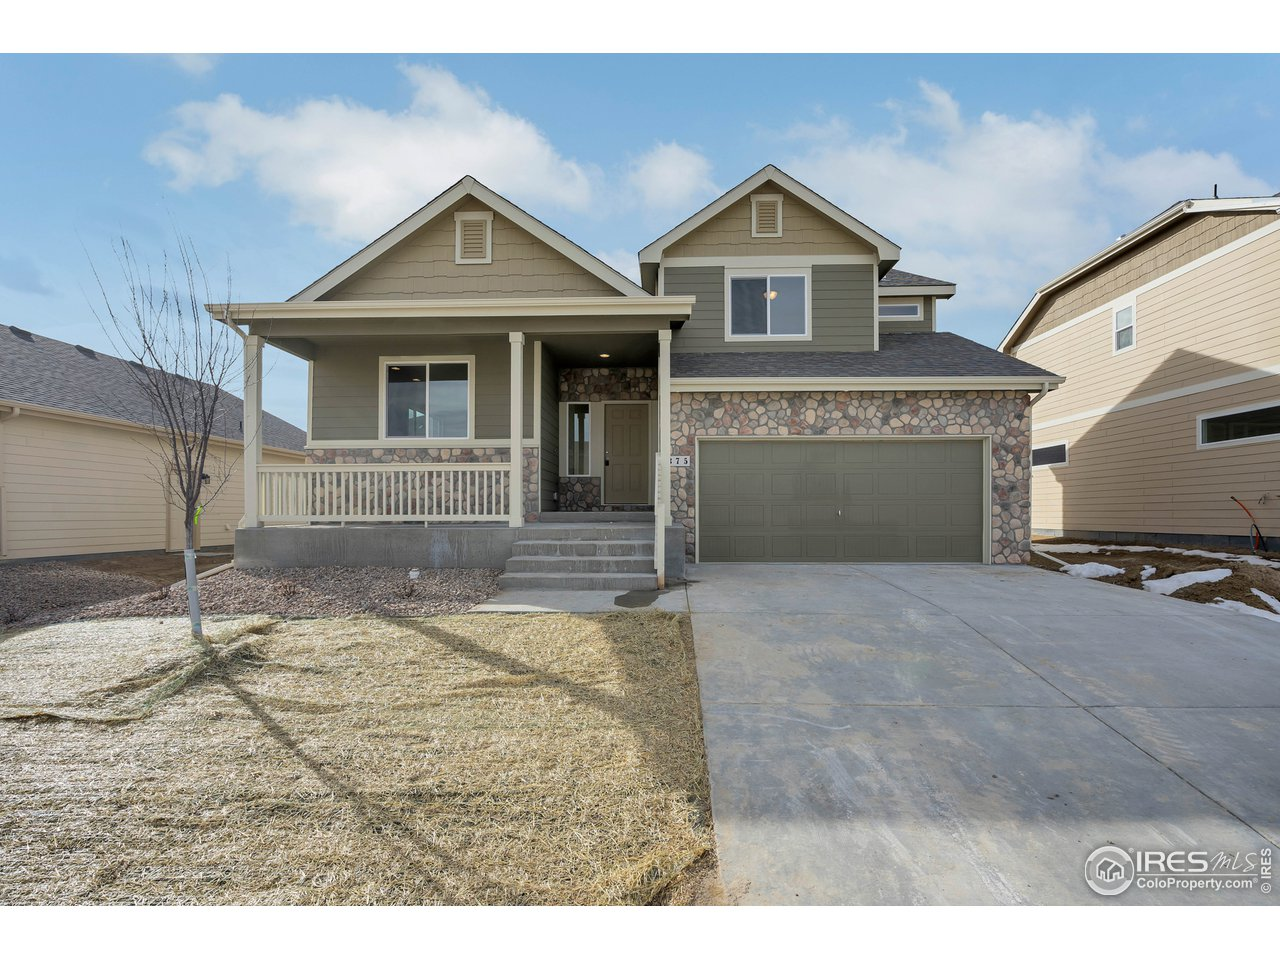 1419 88th Ave, Greeley CO 80634